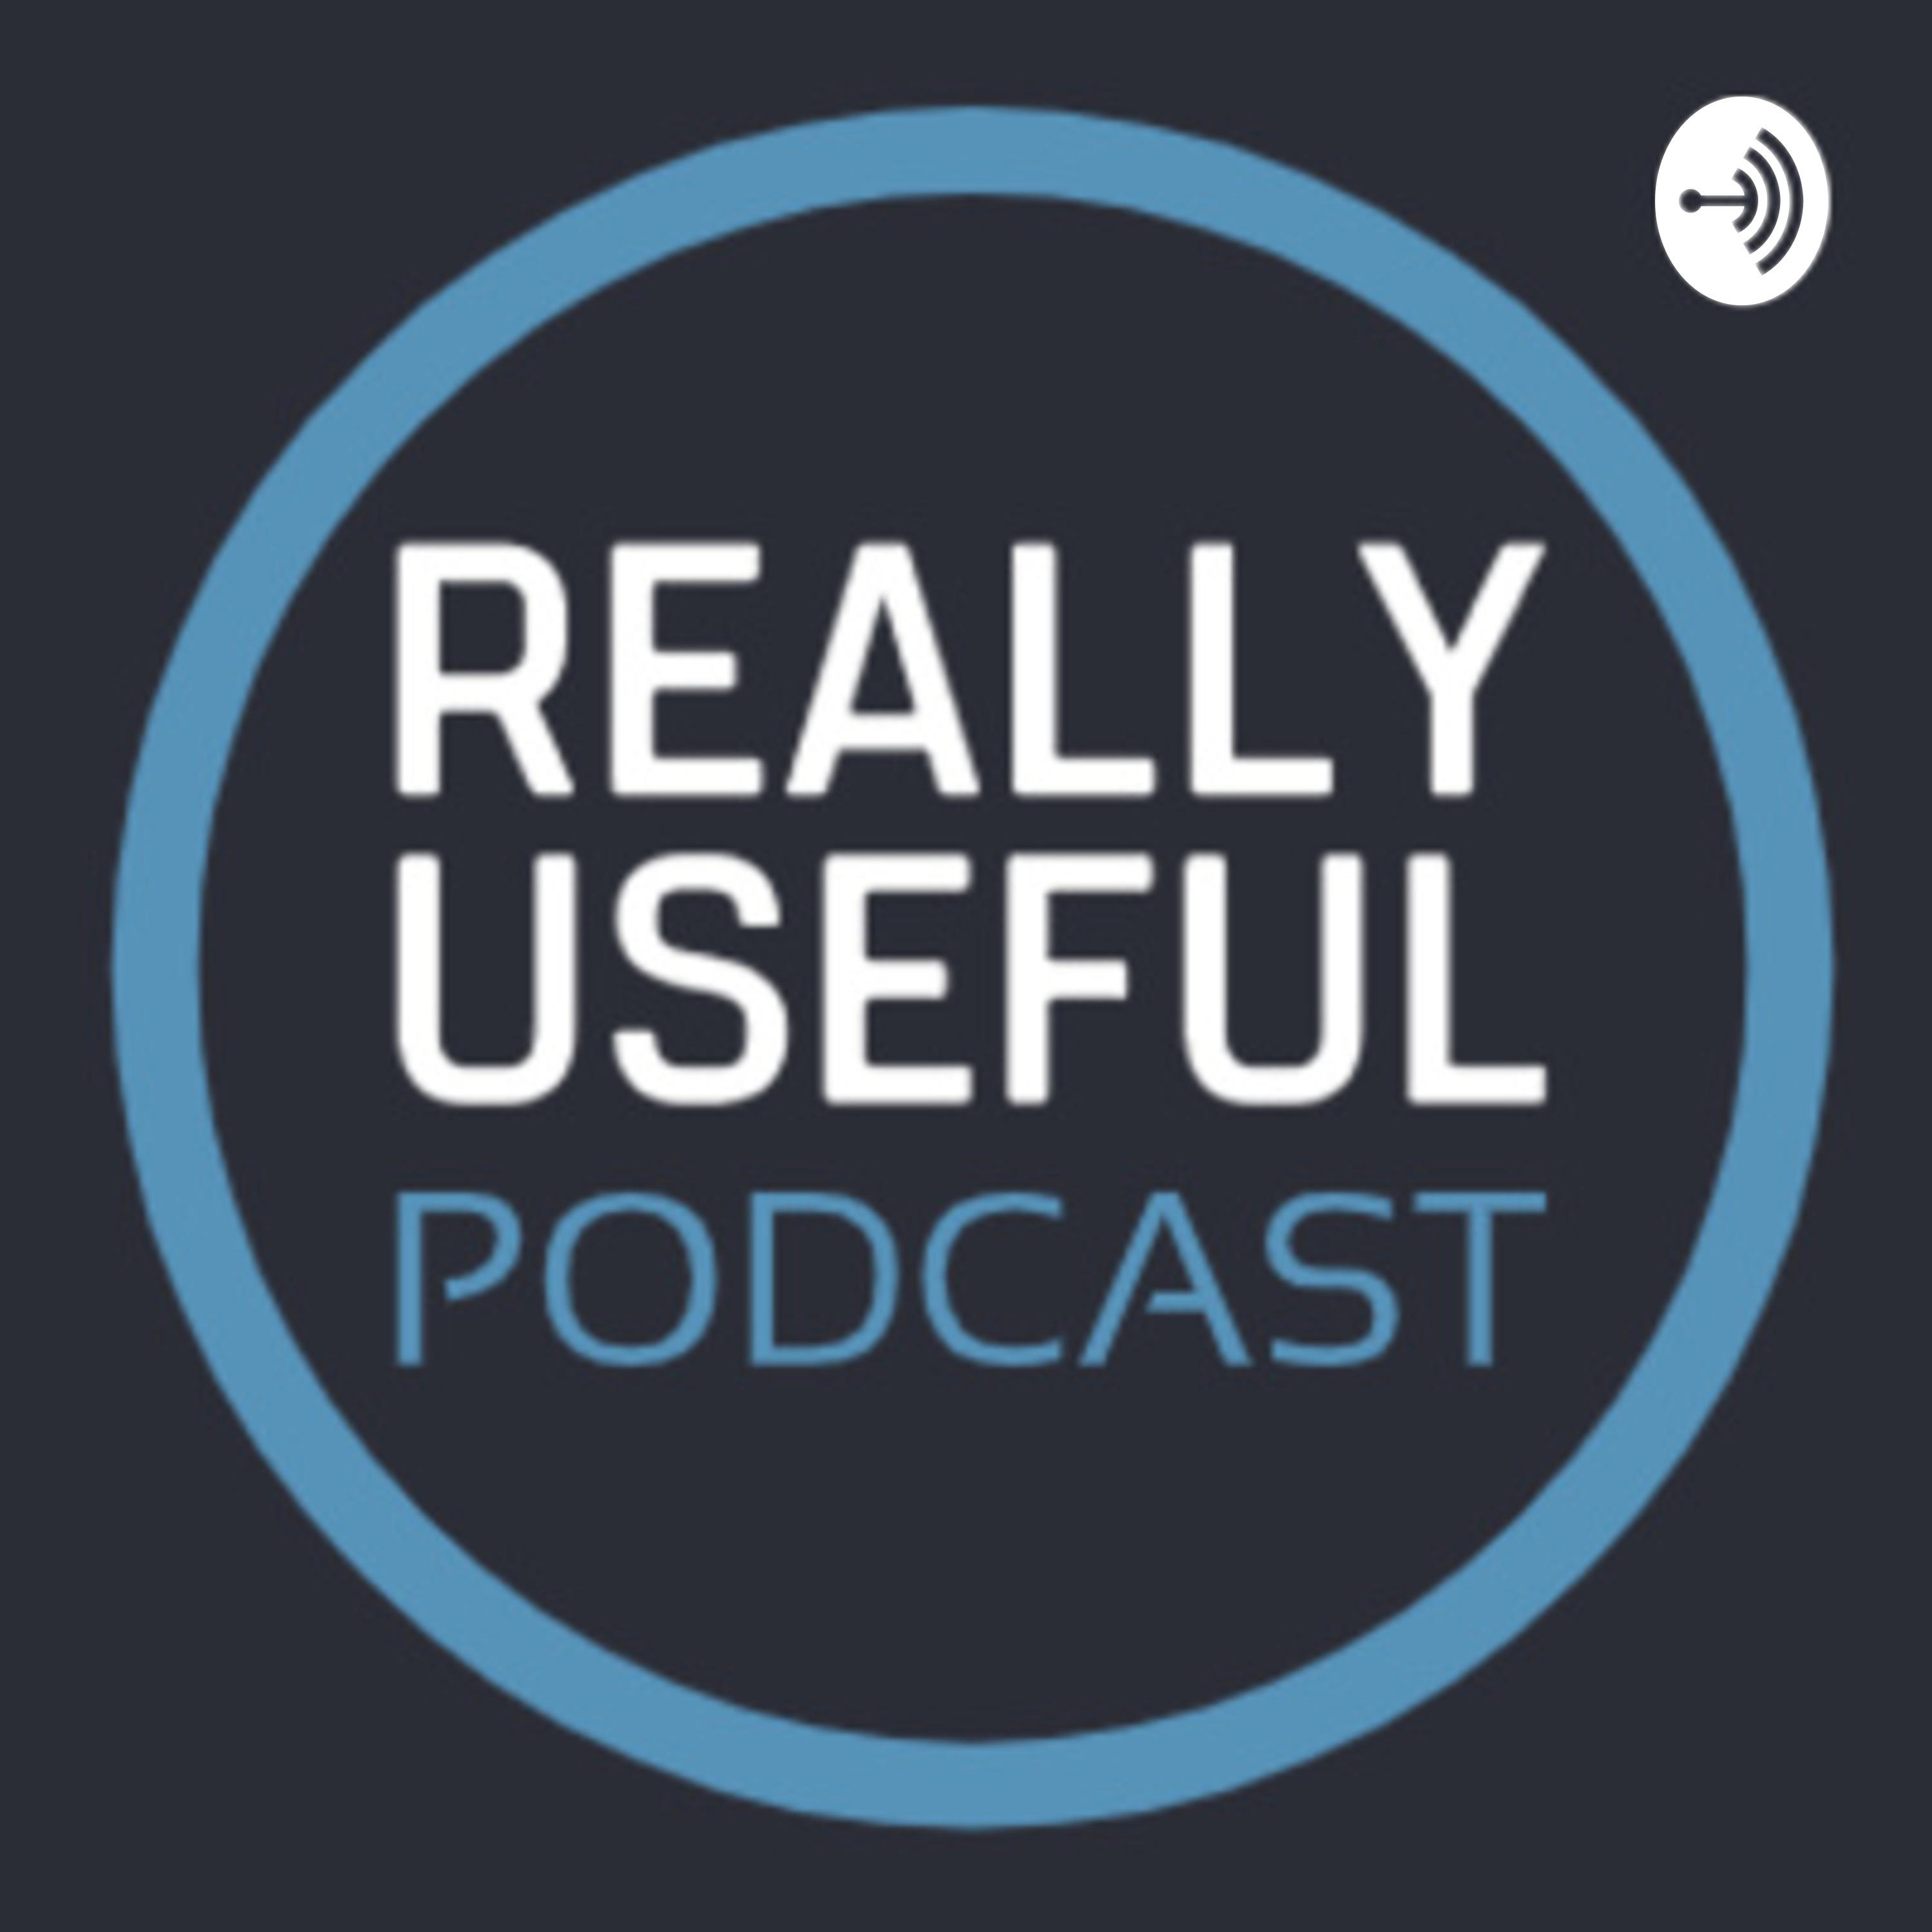 The Really Useful Podcast – Podcast – Podtail